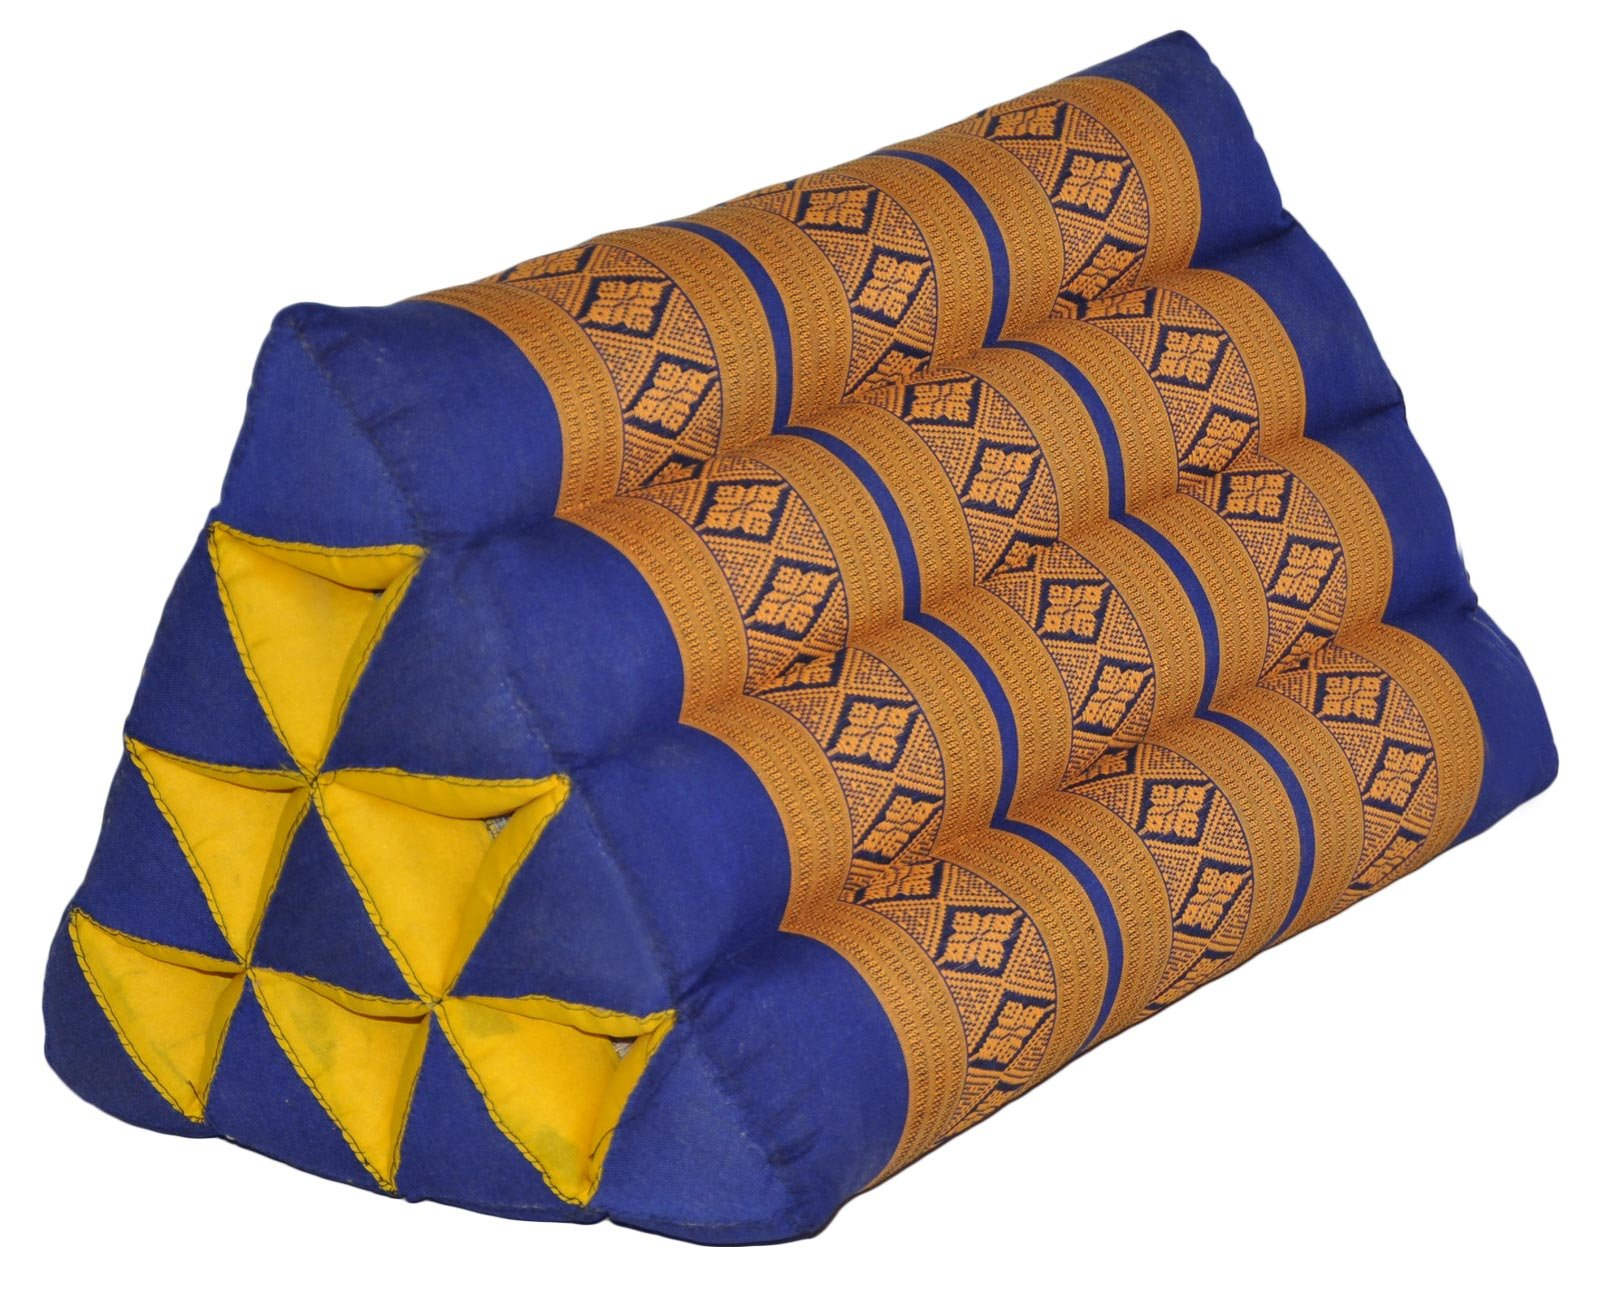 Thai triangular cushion, blue/yellow, relaxation, beach, kapok, made in Thailand. (82100) by Wilai GmbH